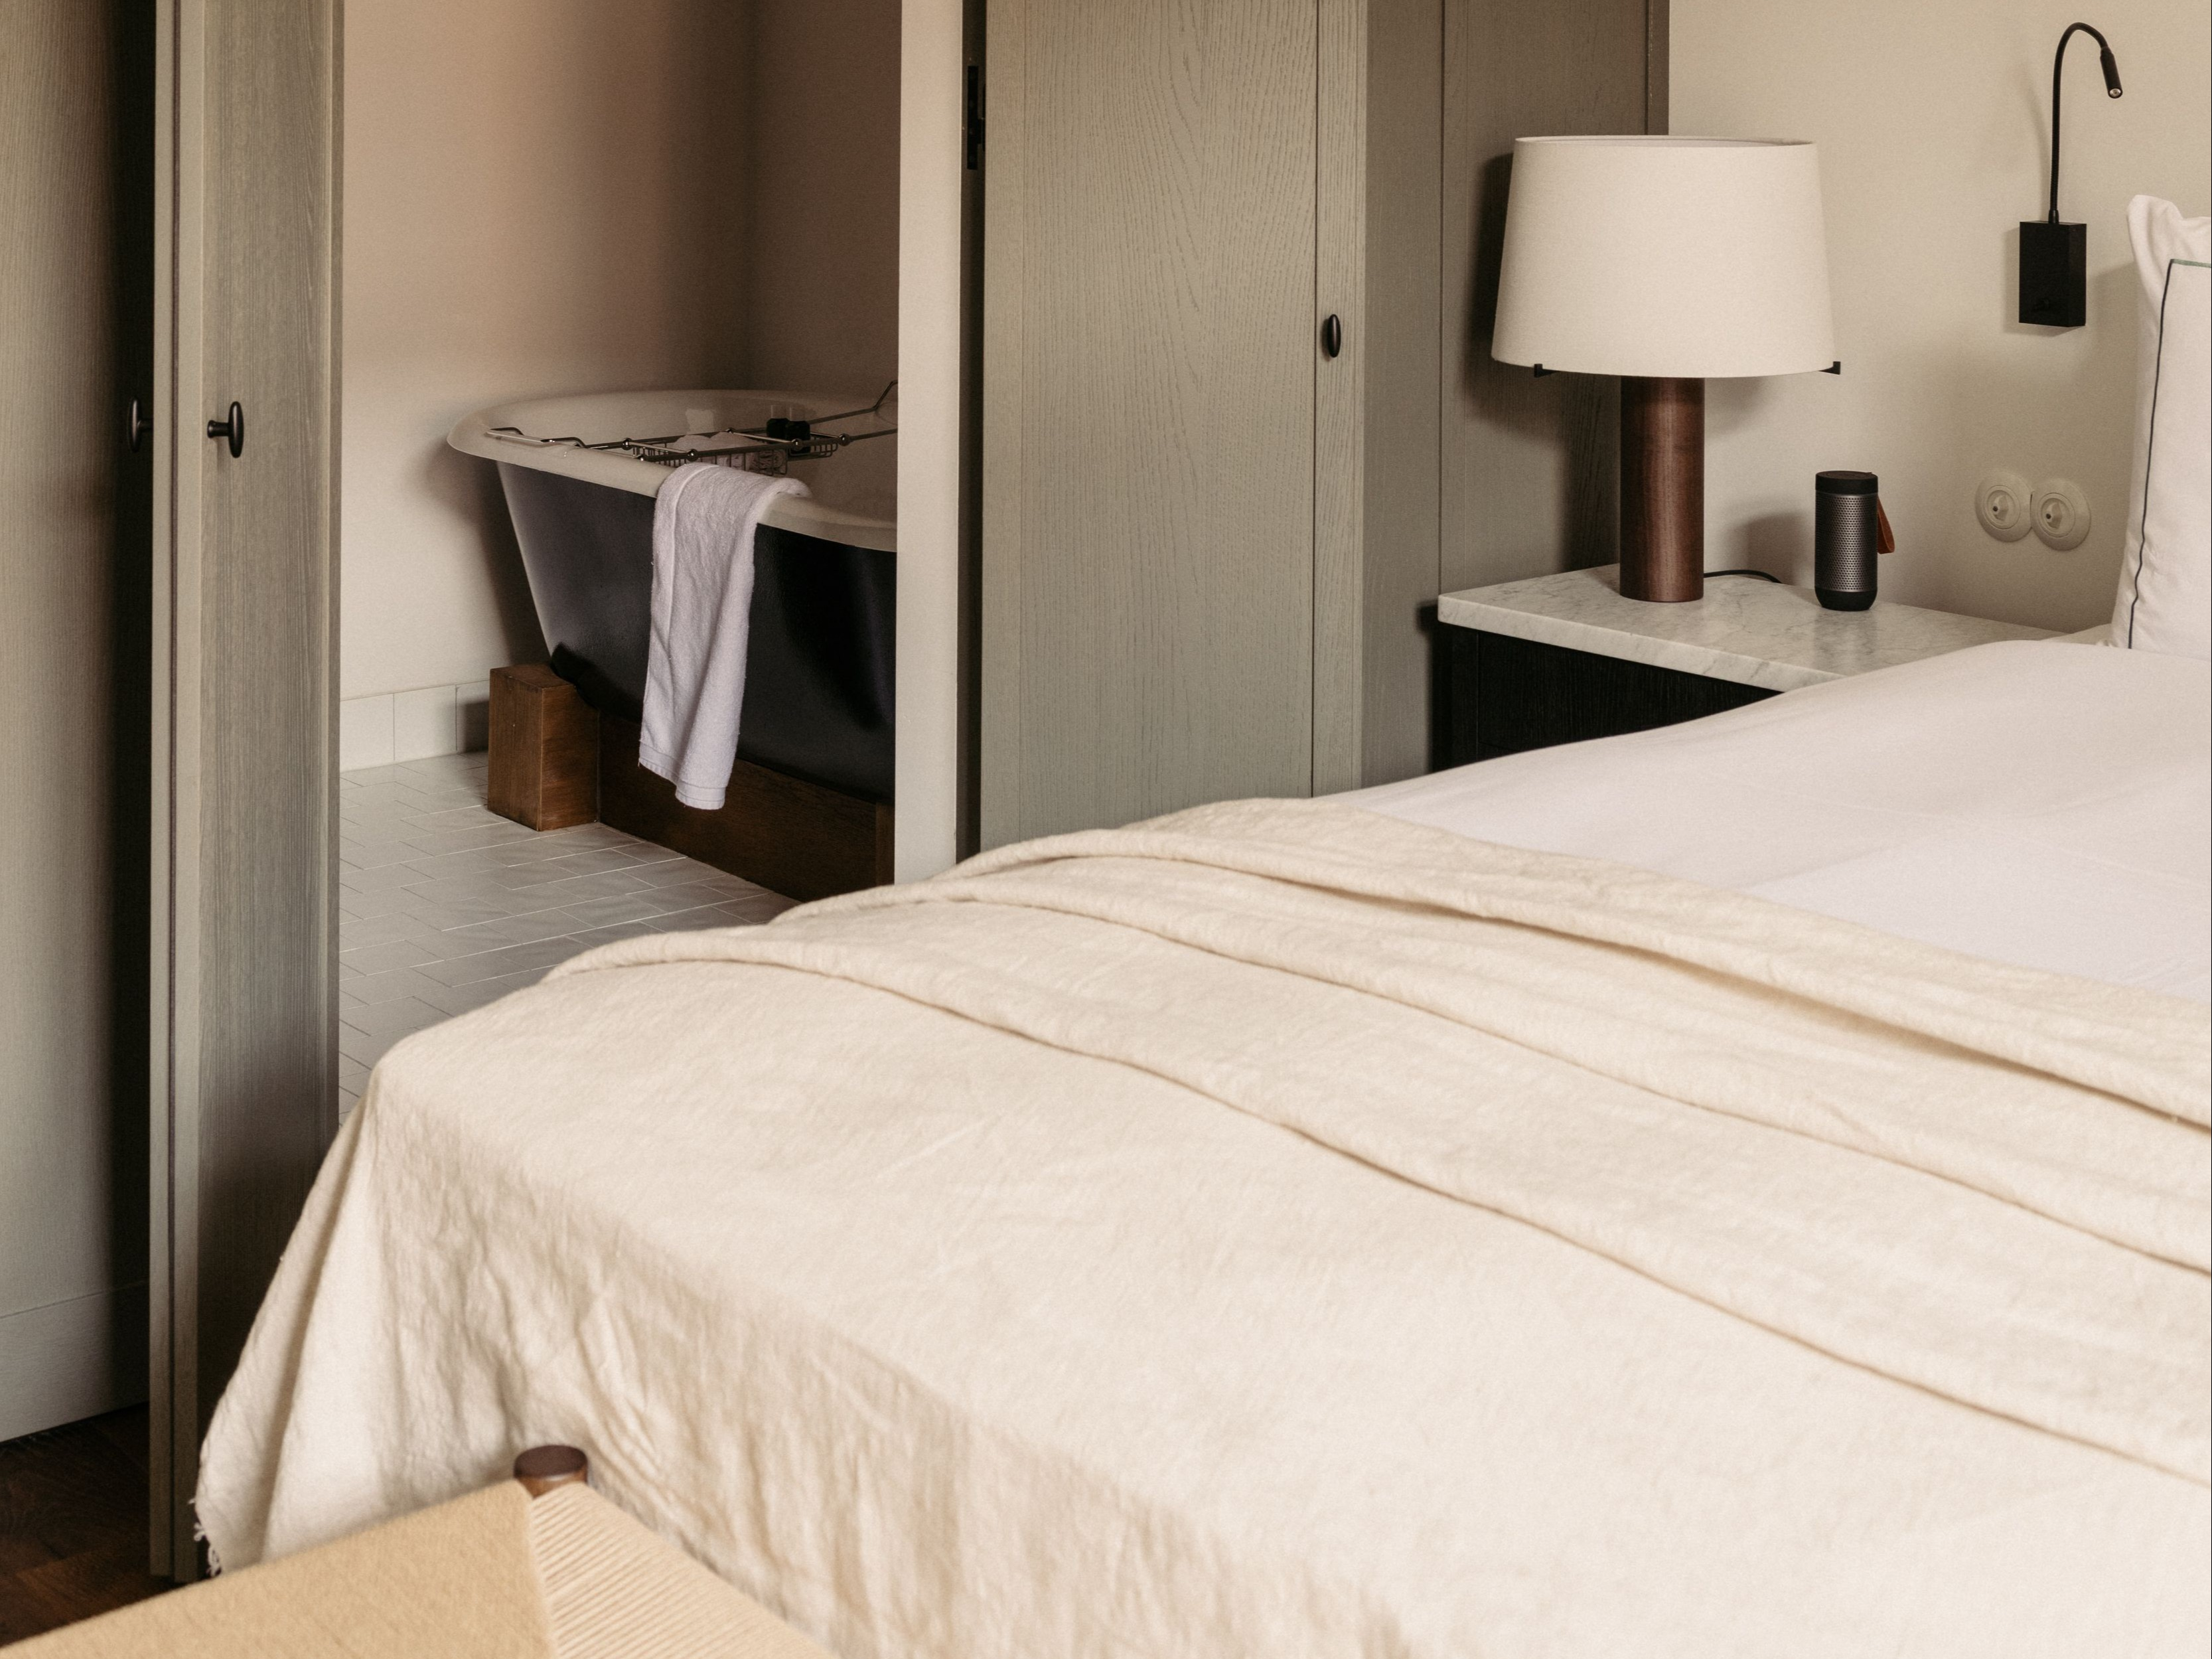 High-end design boutique hotel in Antwerp, Belgium